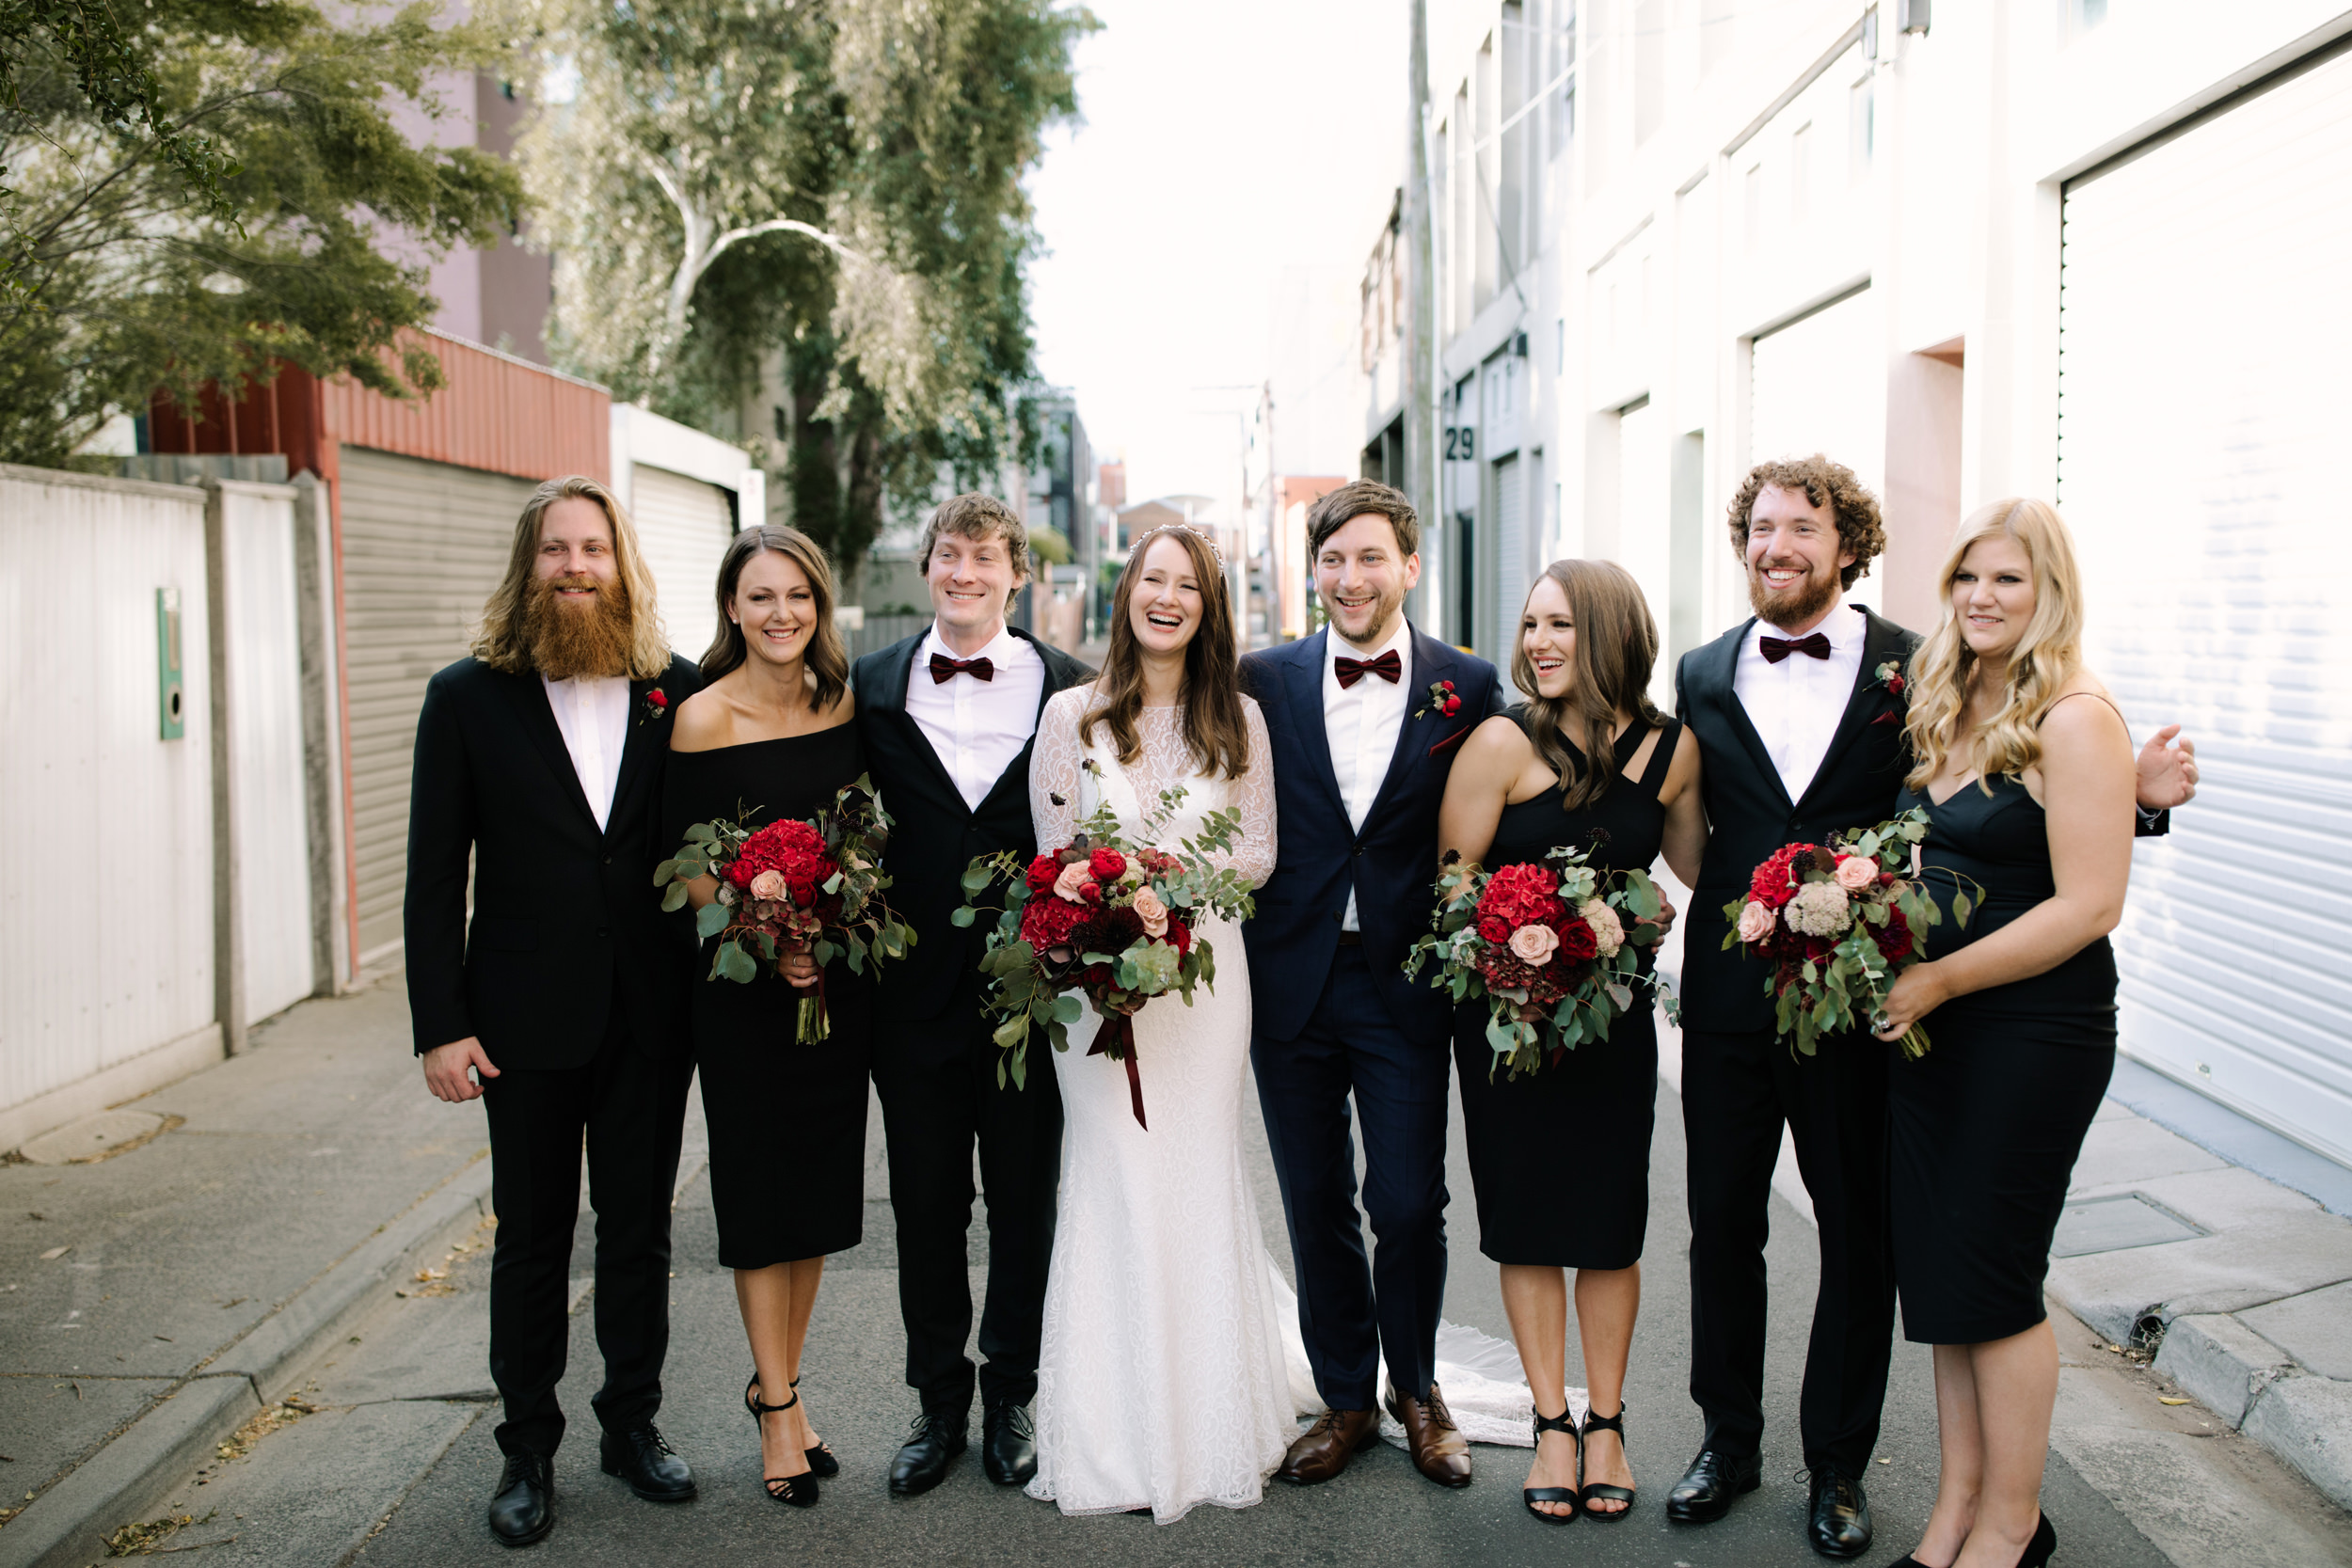 I_Got_You_Babe_Weddings_Emily_Matt_Rupert_Glasshaus_Melbourne0114.JPG